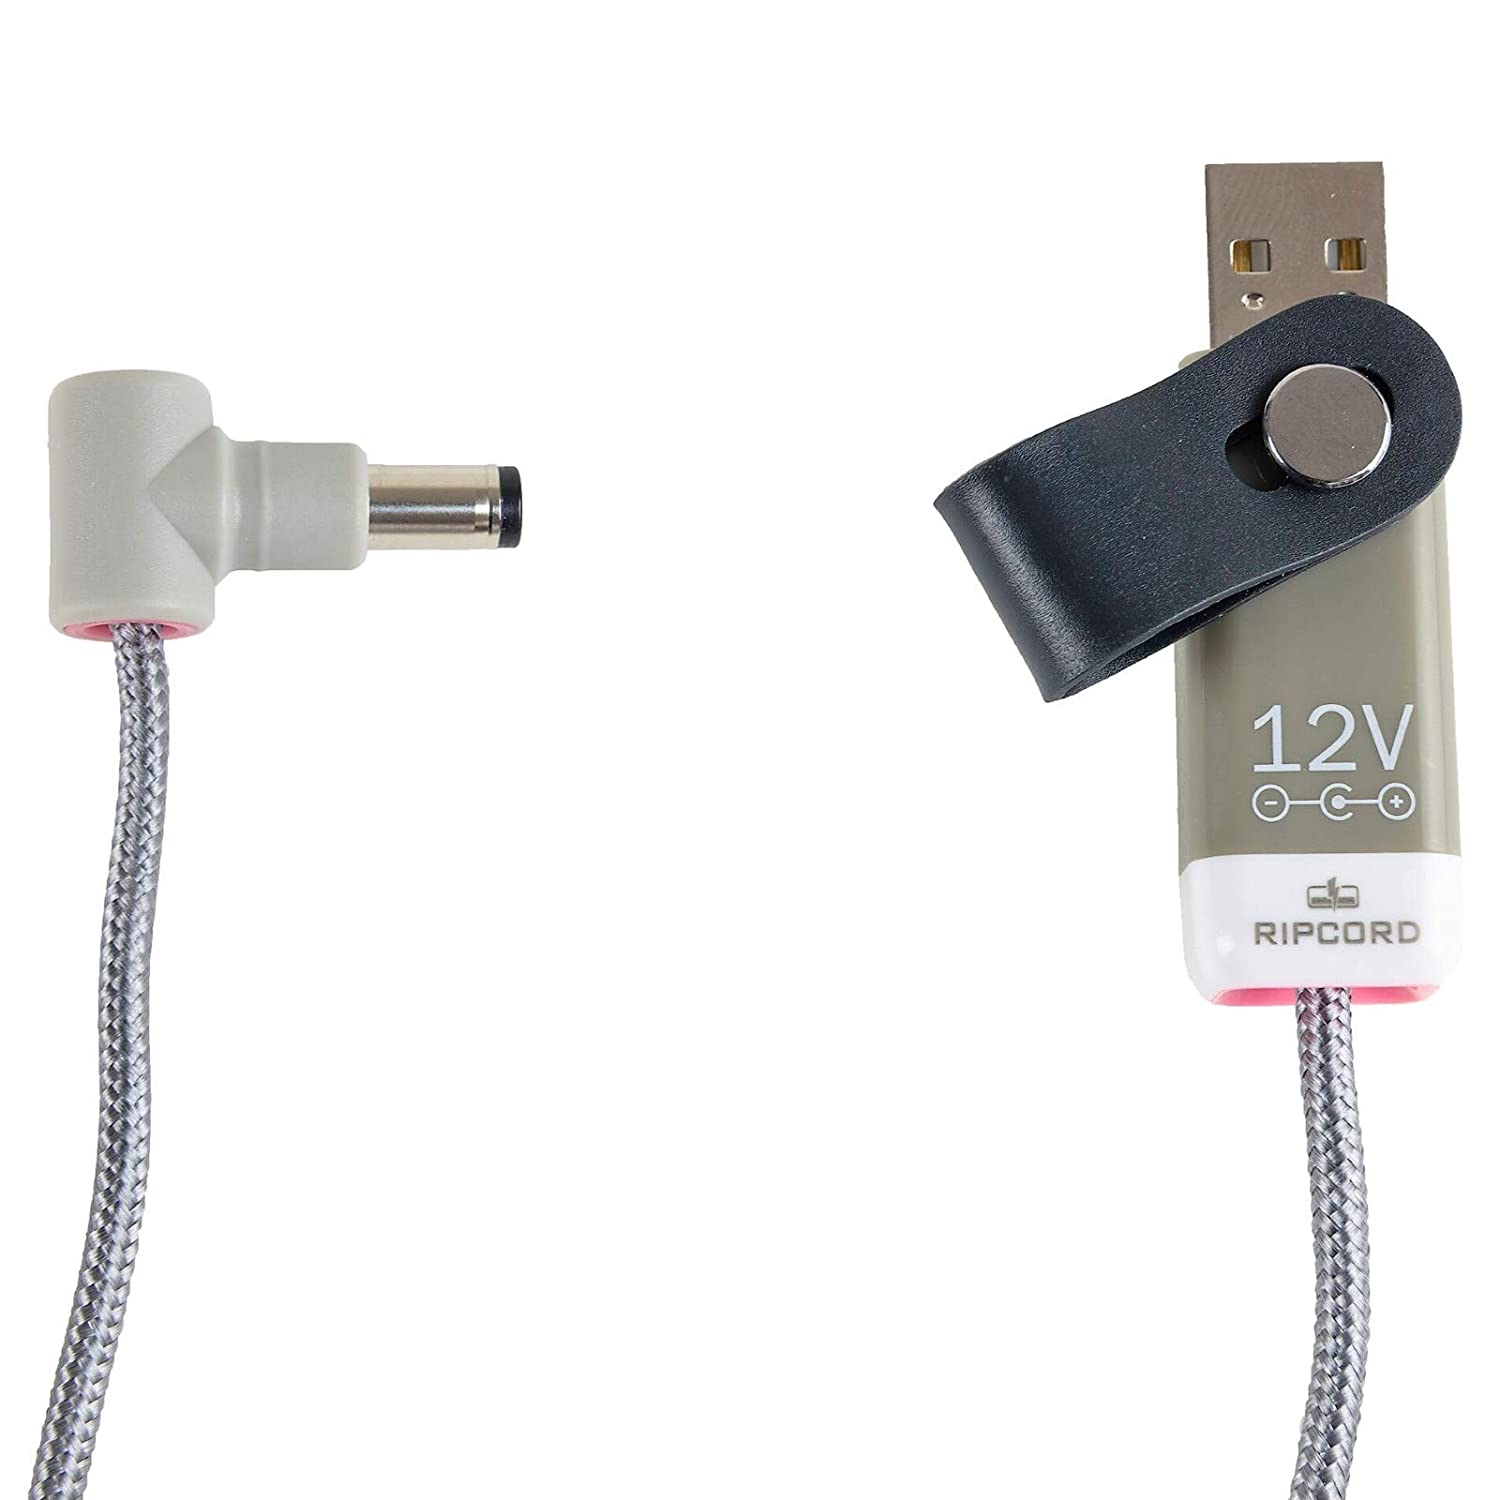 USB to 12V DC power cable compatible with the Elektron Digitakt Drum sampler MyVolts Ripcord